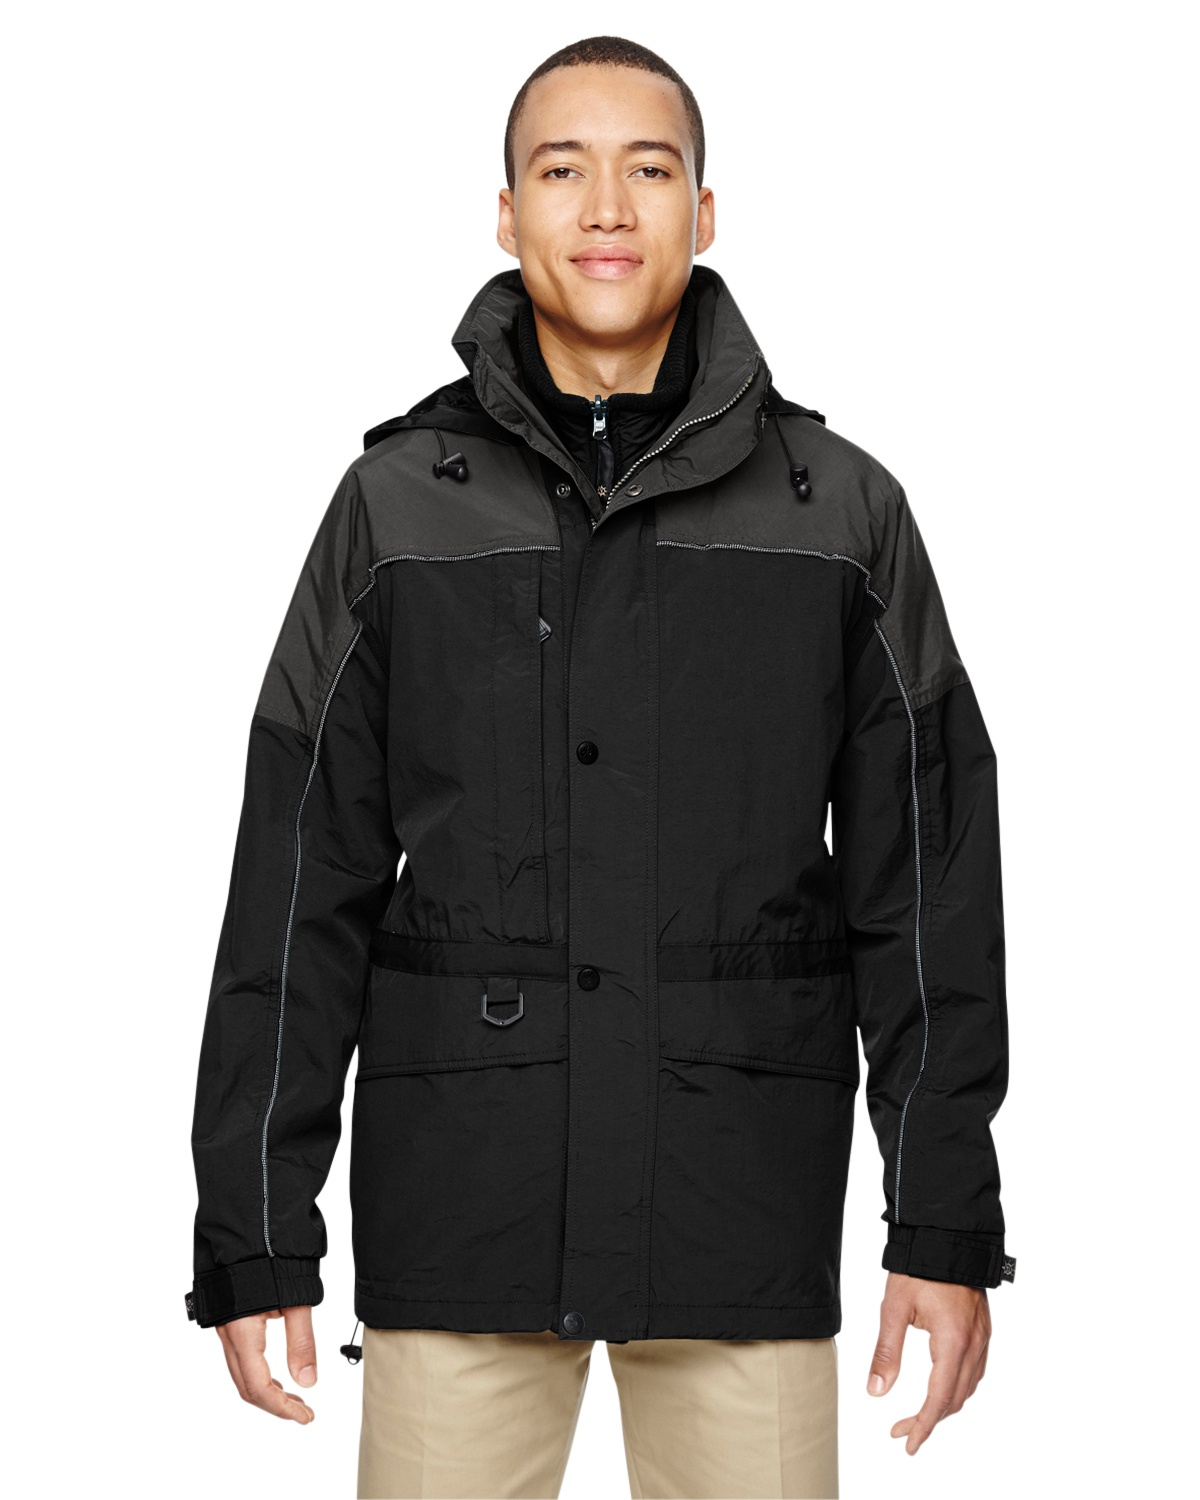 'Ash City - North End 88006 Adult 3-in-1 Two-Tone Parka'